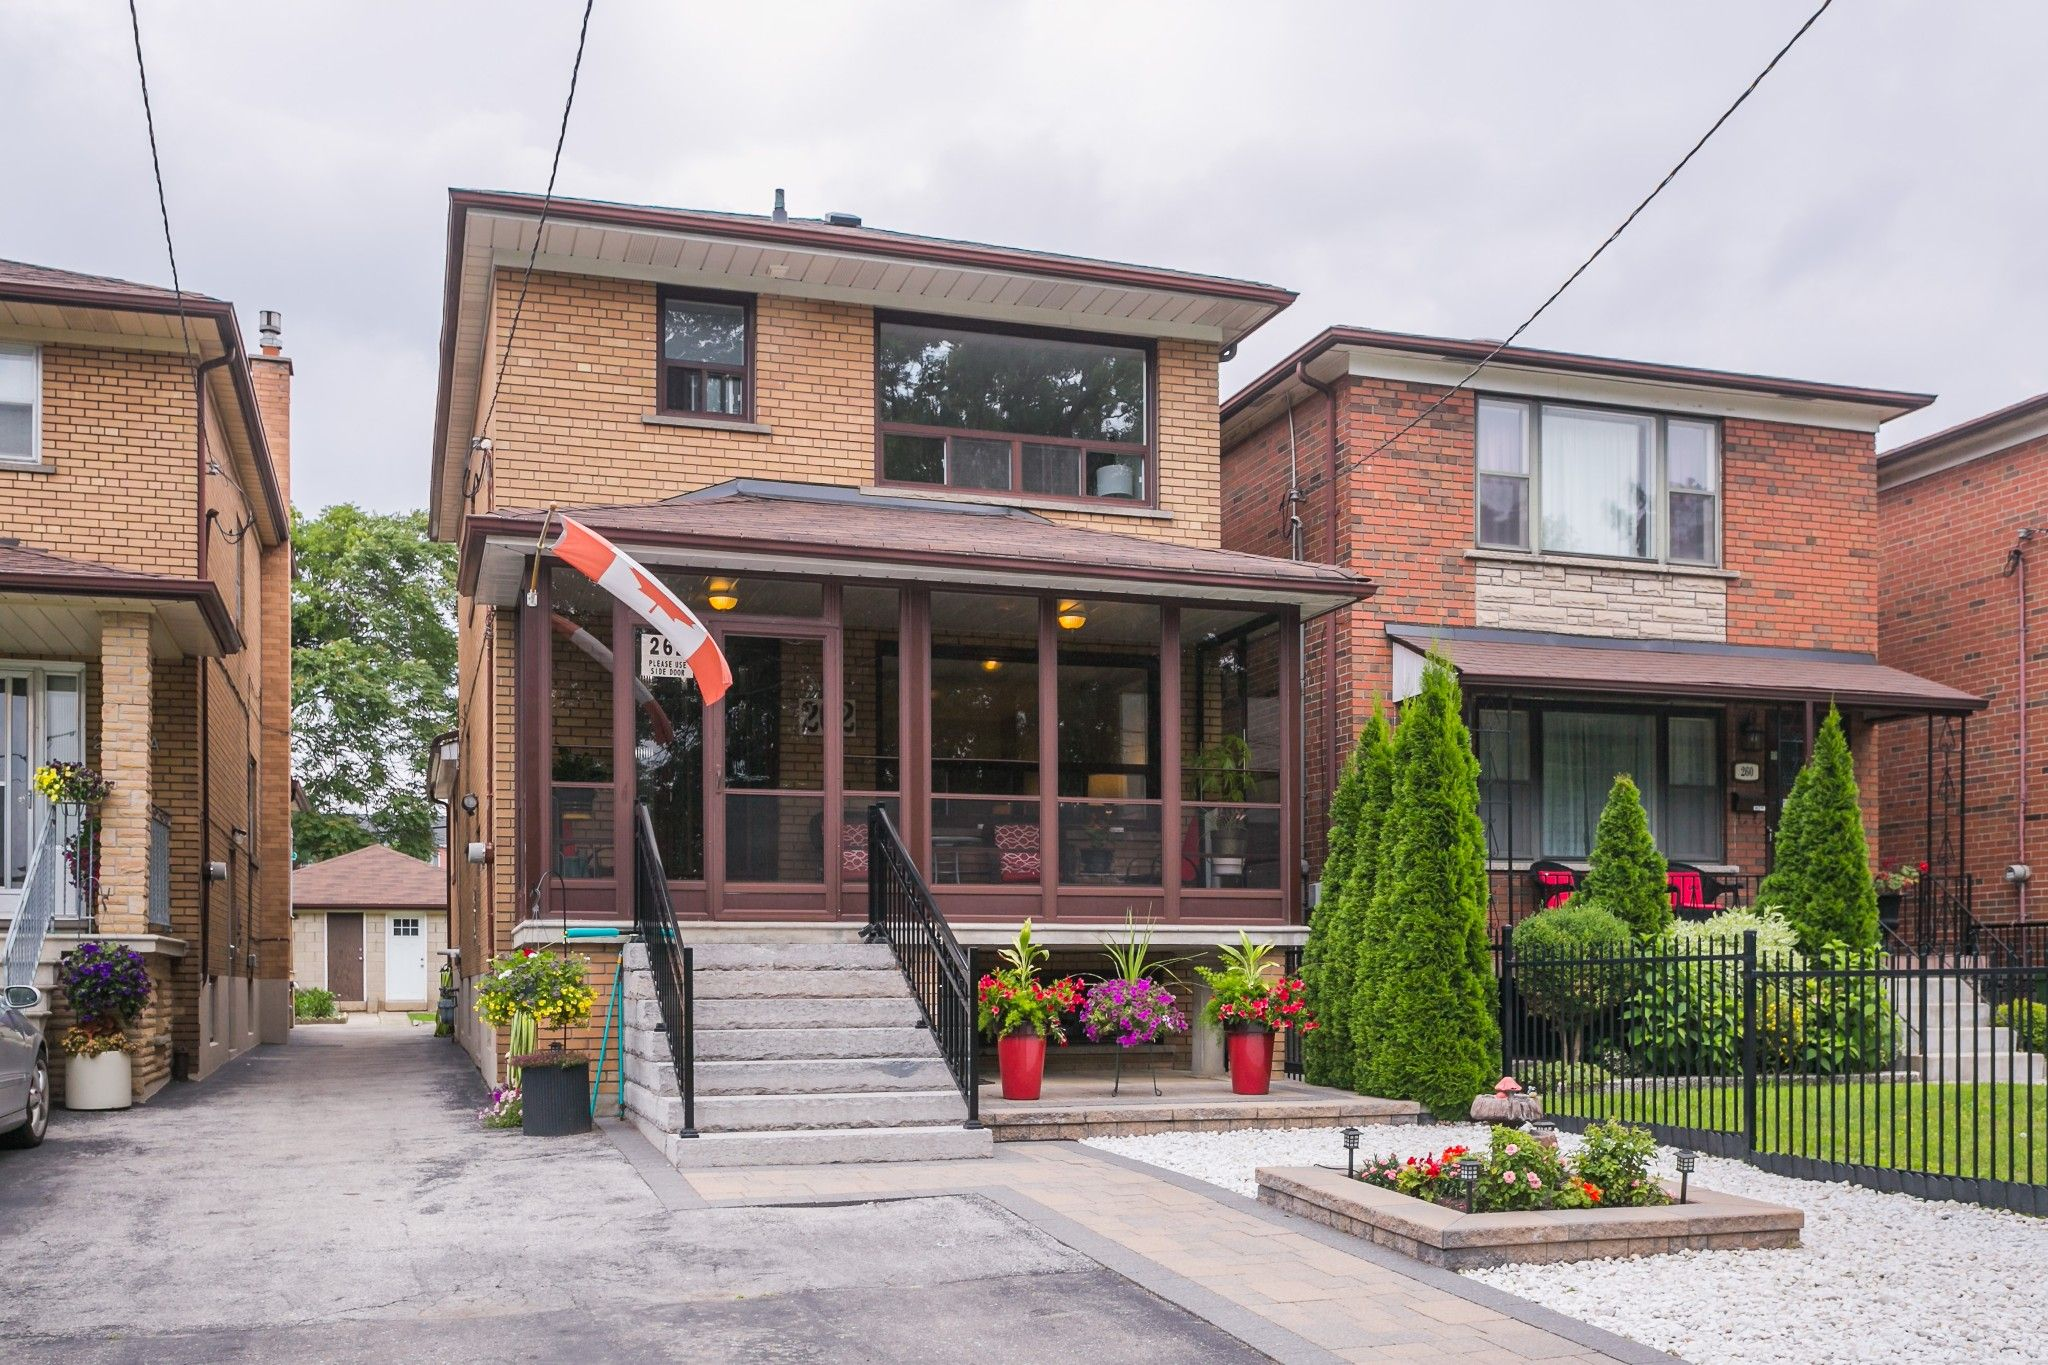 Main Photo: 262 Ryding Ave in Toronto: Junction Area Freehold for sale (Toronto W02)  : MLS®# W4544142